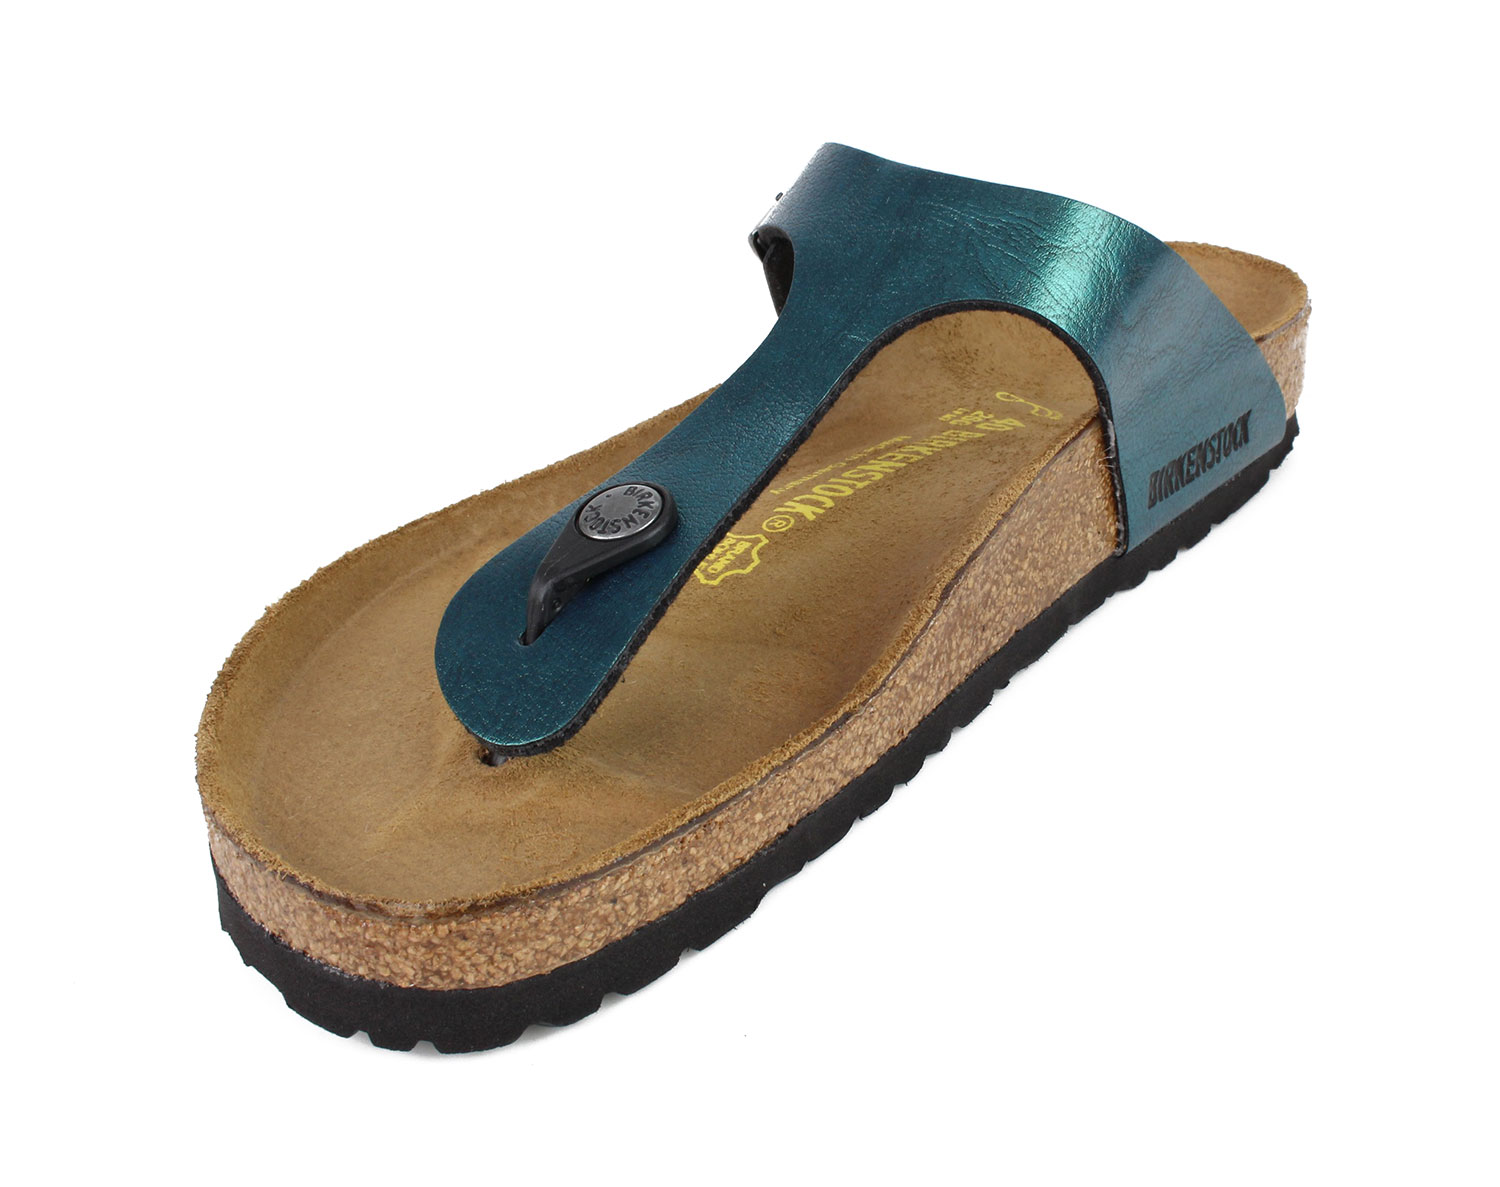 Birkenstock-Gizeh-Birko-Flor-Womens-Shoes-Slides-Sandals-anatomical-footbed-NEW thumbnail 18